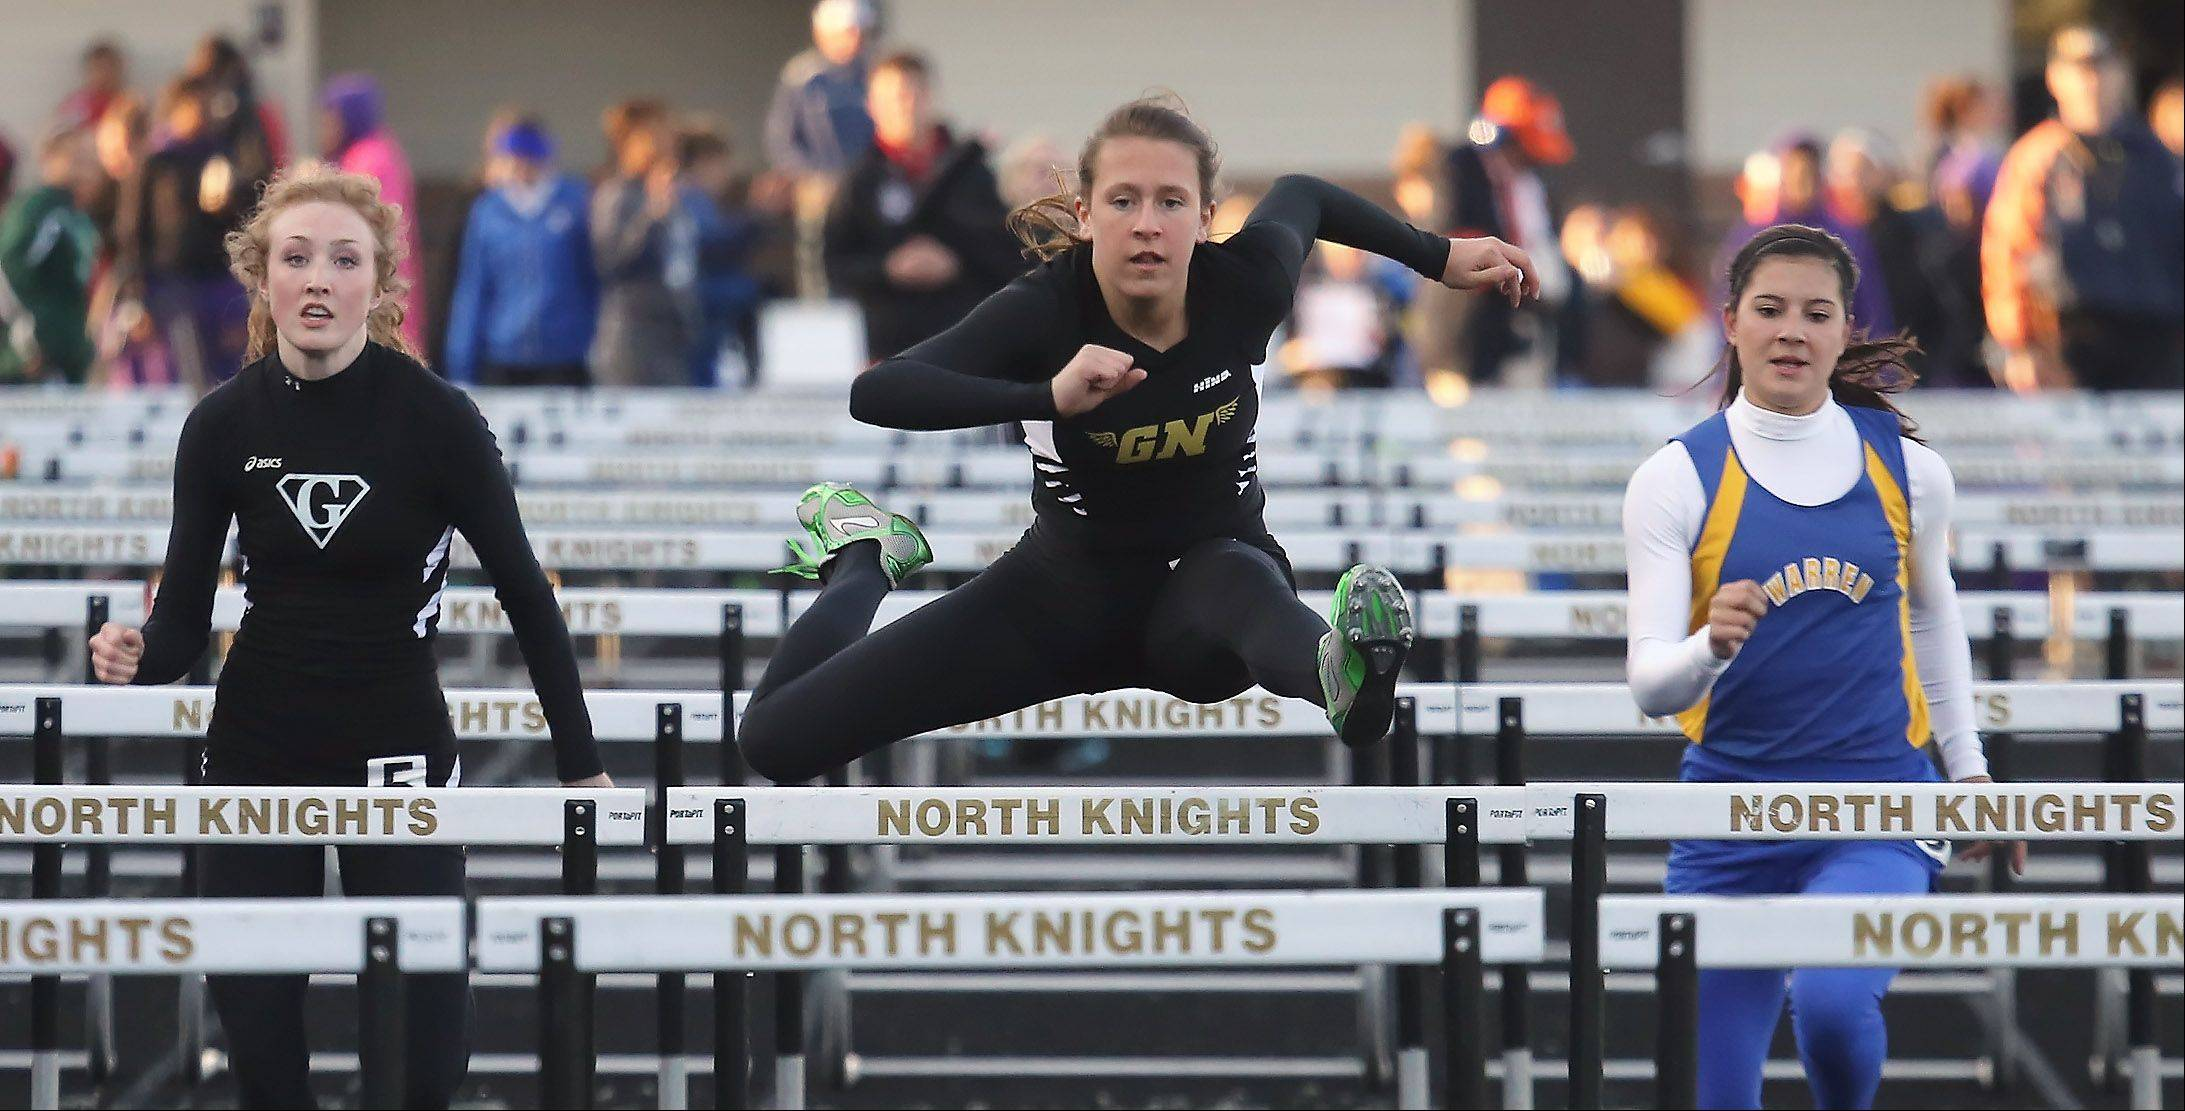 Grayslake North hurdler Allie O'Connell leads the pack as she wins the 100 hurdles during the Lake County meet Thursday at Grayslake North.